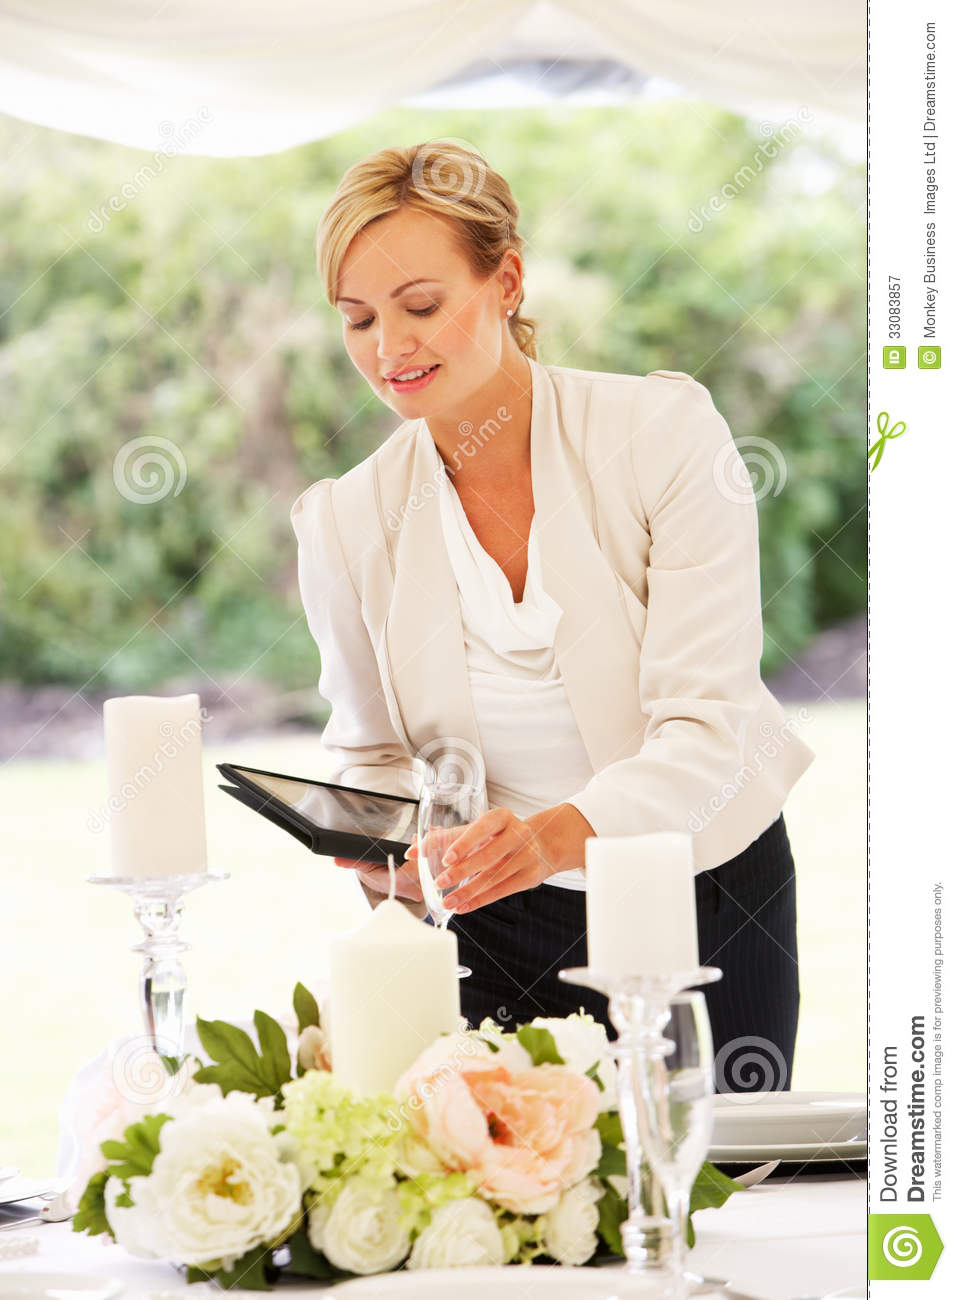 Wedding Planner Checking Table Decorations In Marquee Stock Image